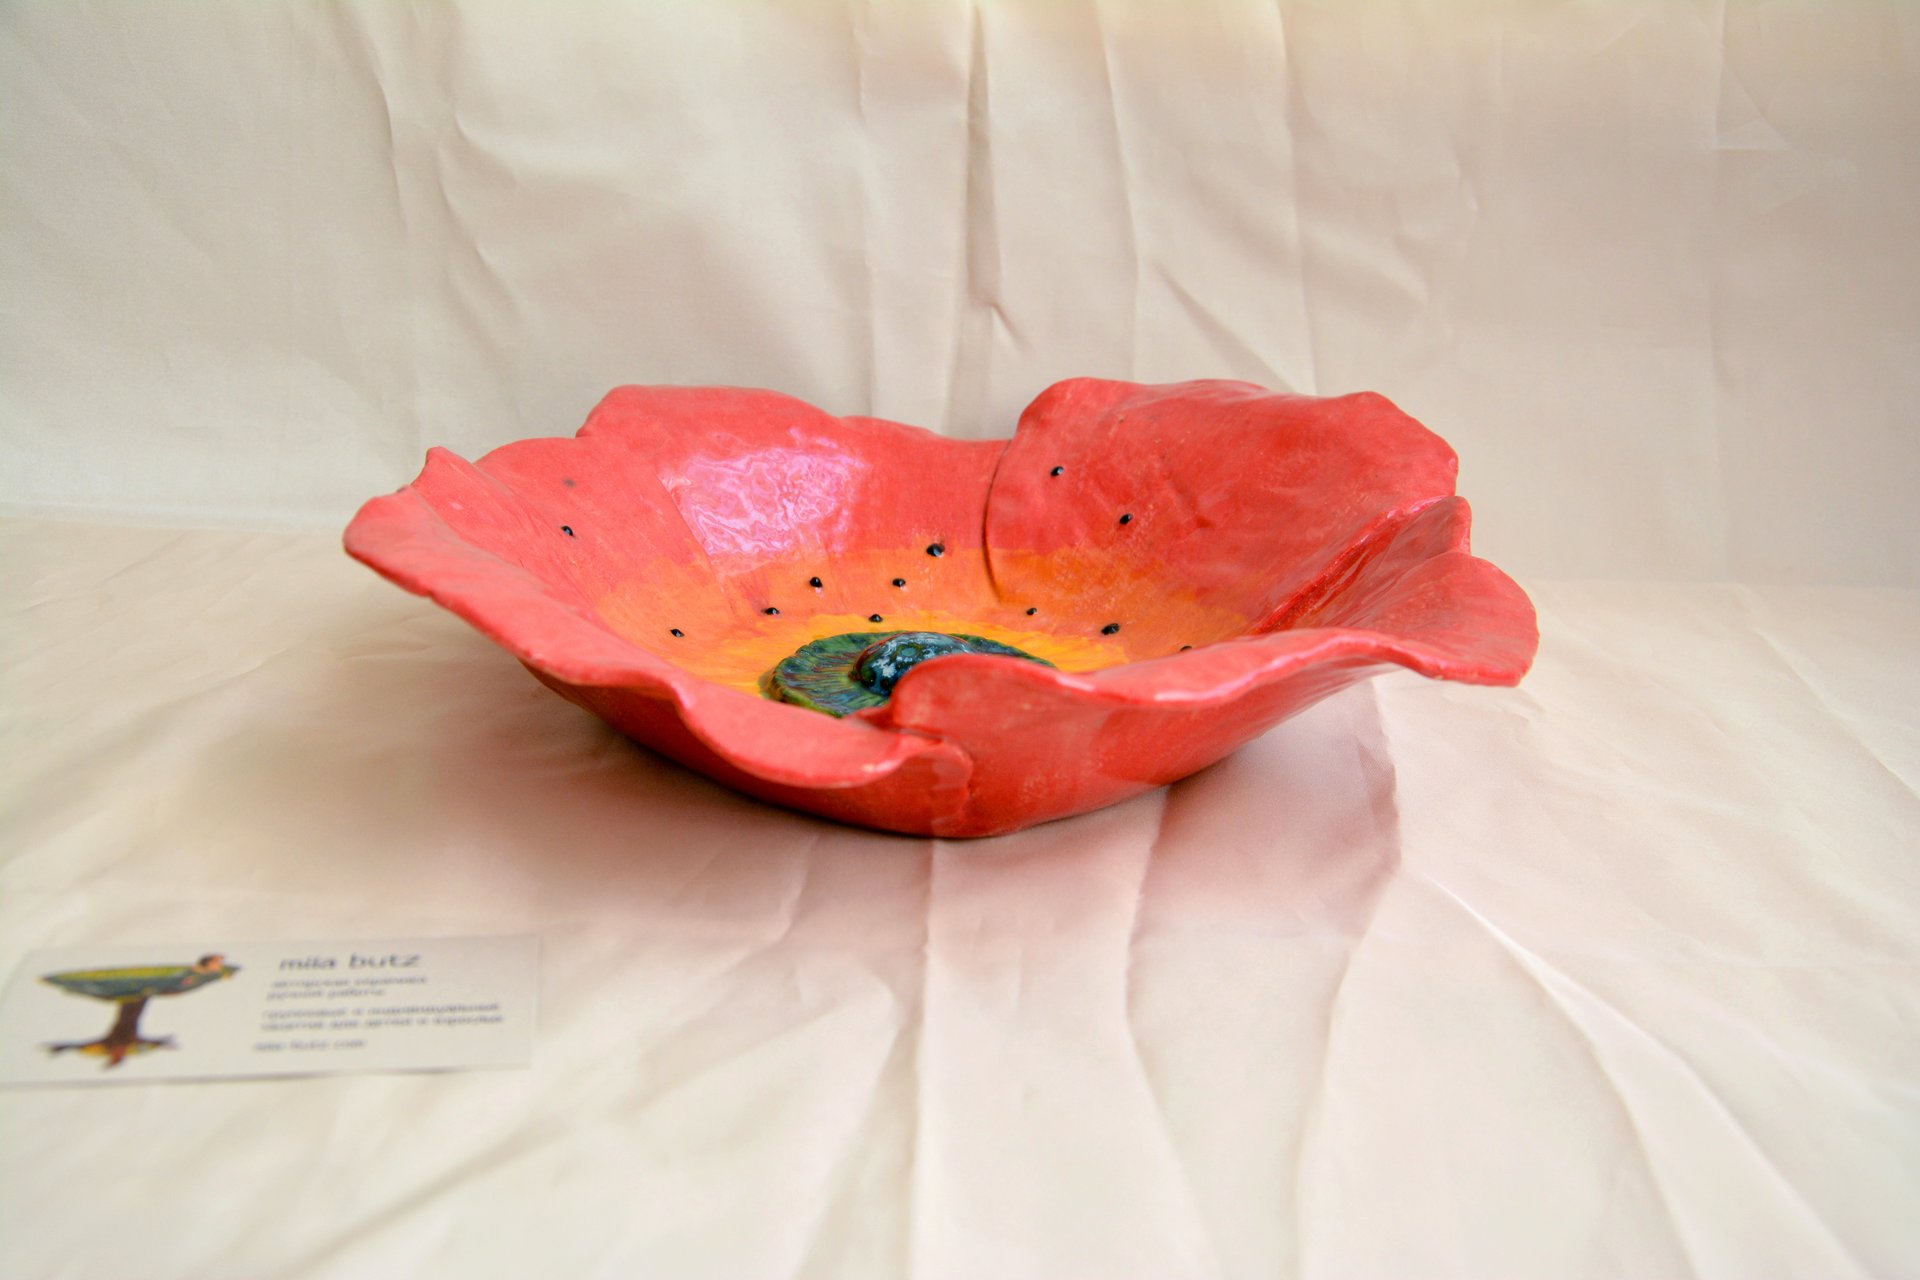 Fruit Dish Poppy 1 - Ceramic dishes, max diameter - 30 cm, height - 7 cm, photo 4 of 5.